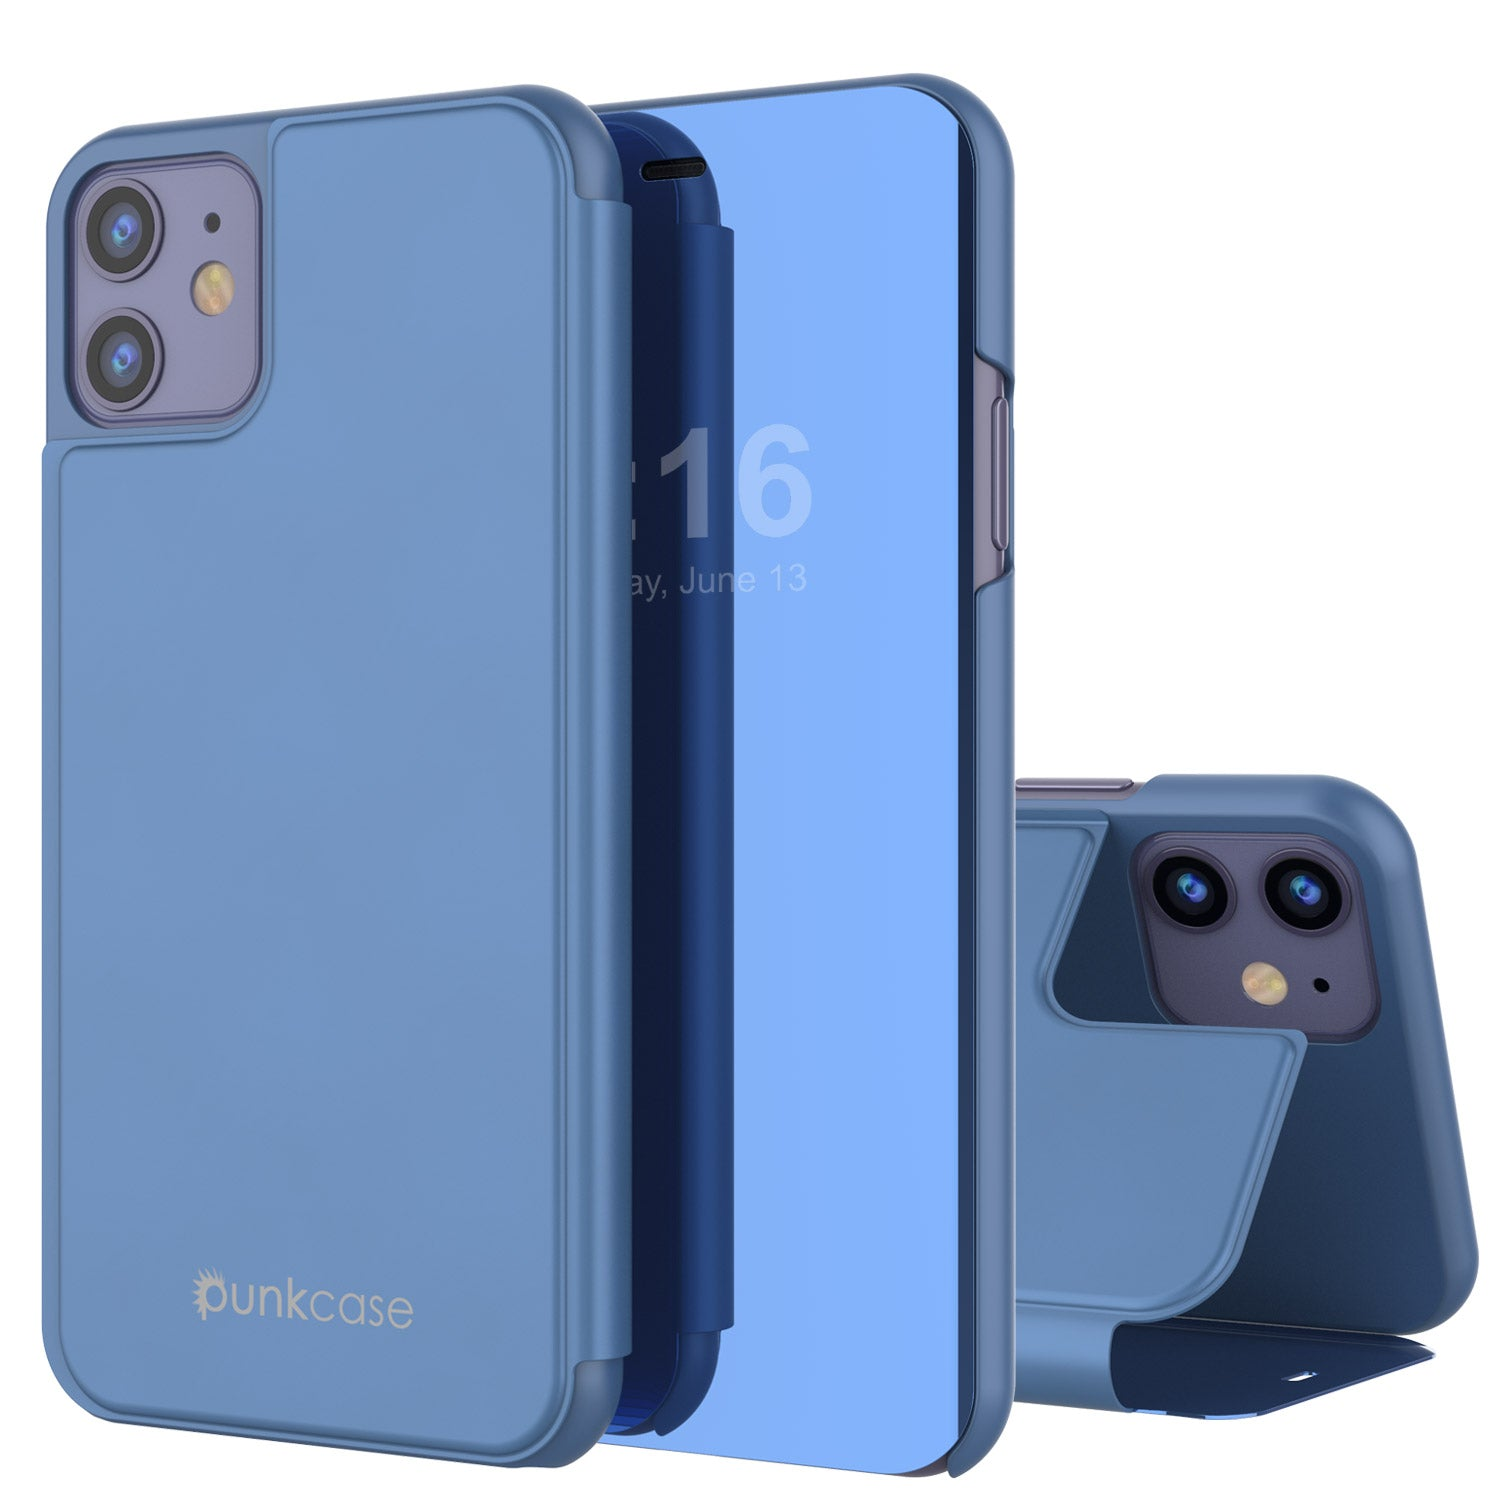 Punkcase iPhone 11 / XI Reflector Case Protective Flip Cover [Blue]